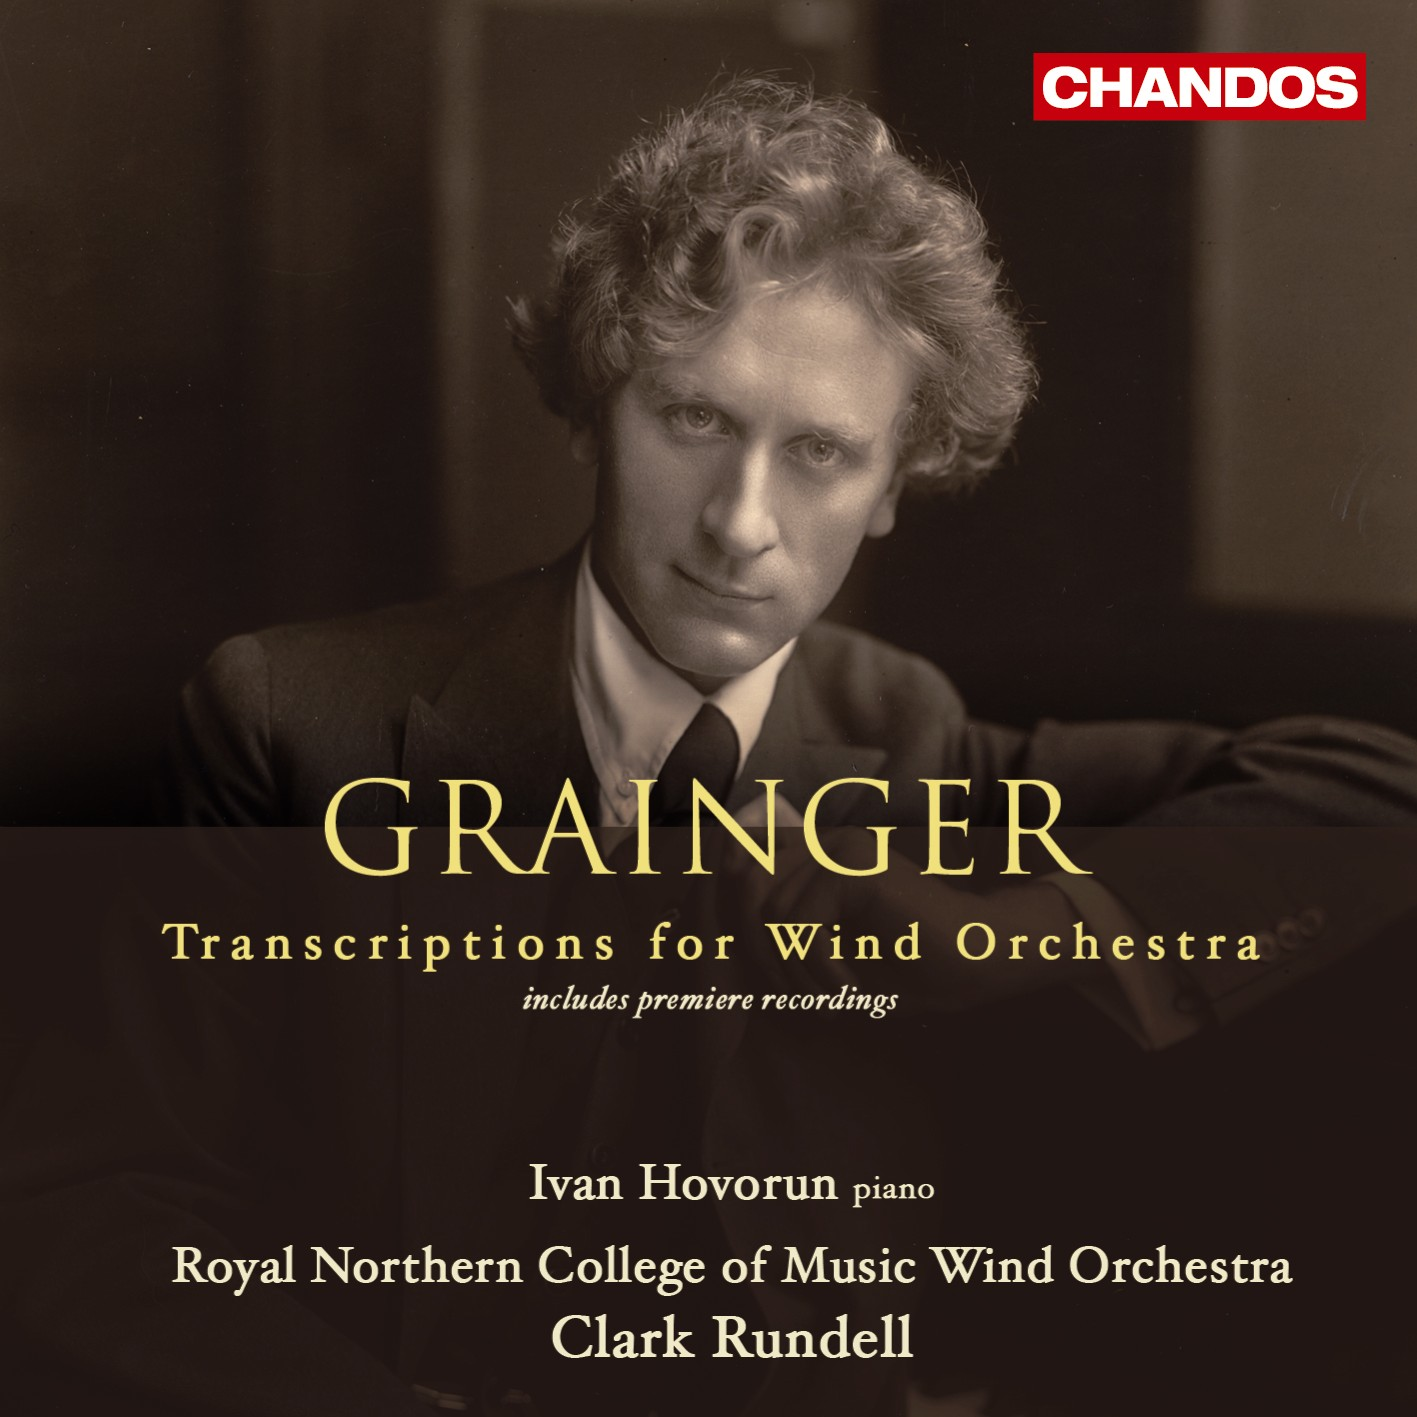 eClassical - Grainger: Transcriptions for Wind Orchestra